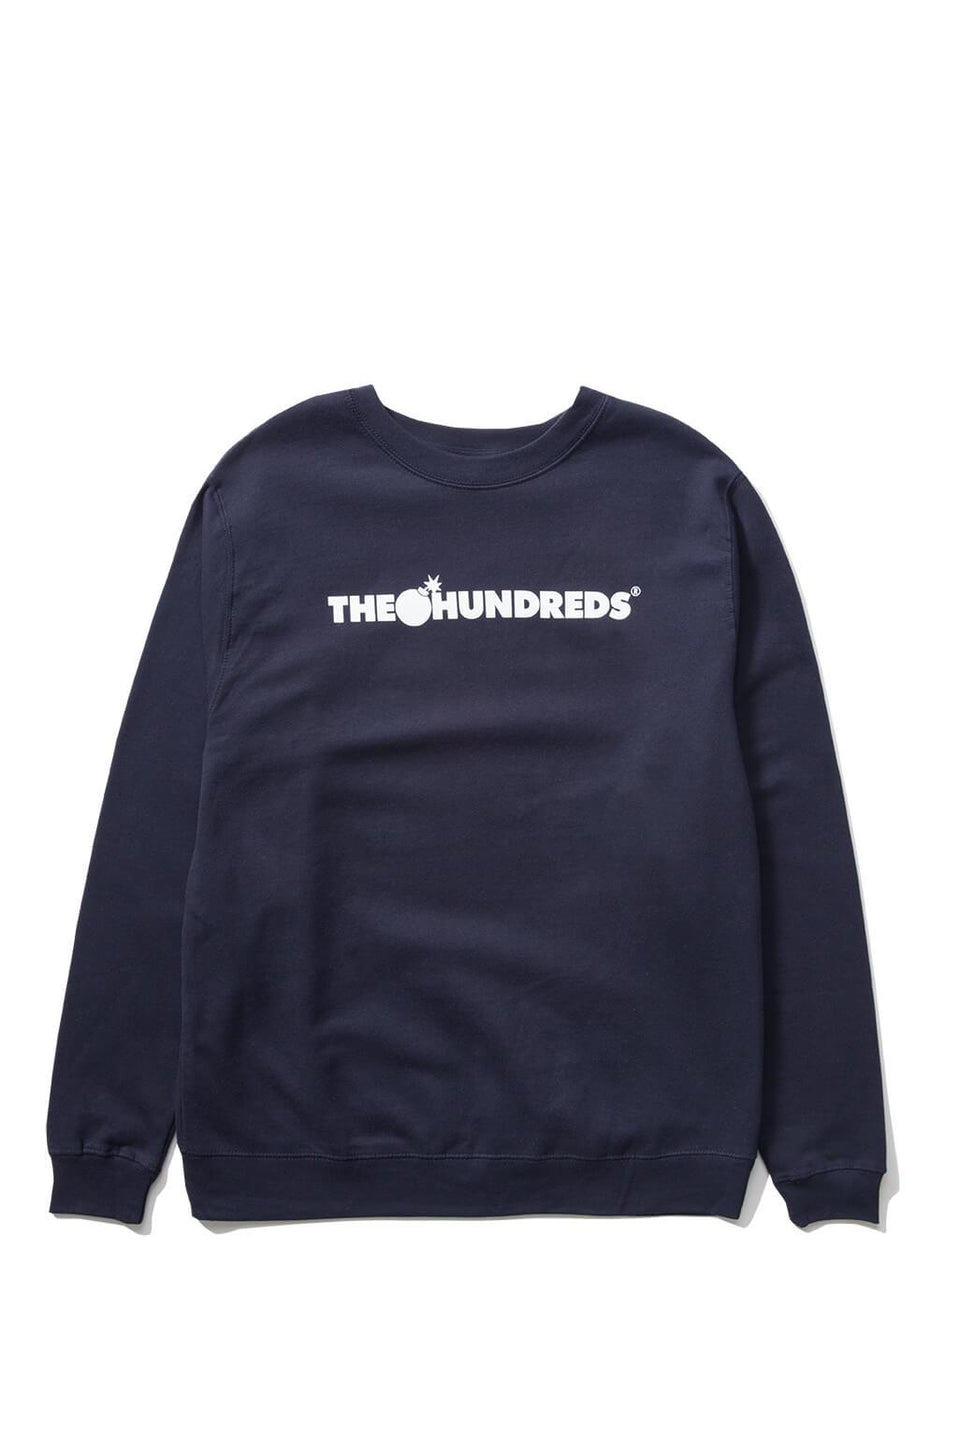 The Hundreds Forever Bar Crewneck Sweatshirt Navy Front